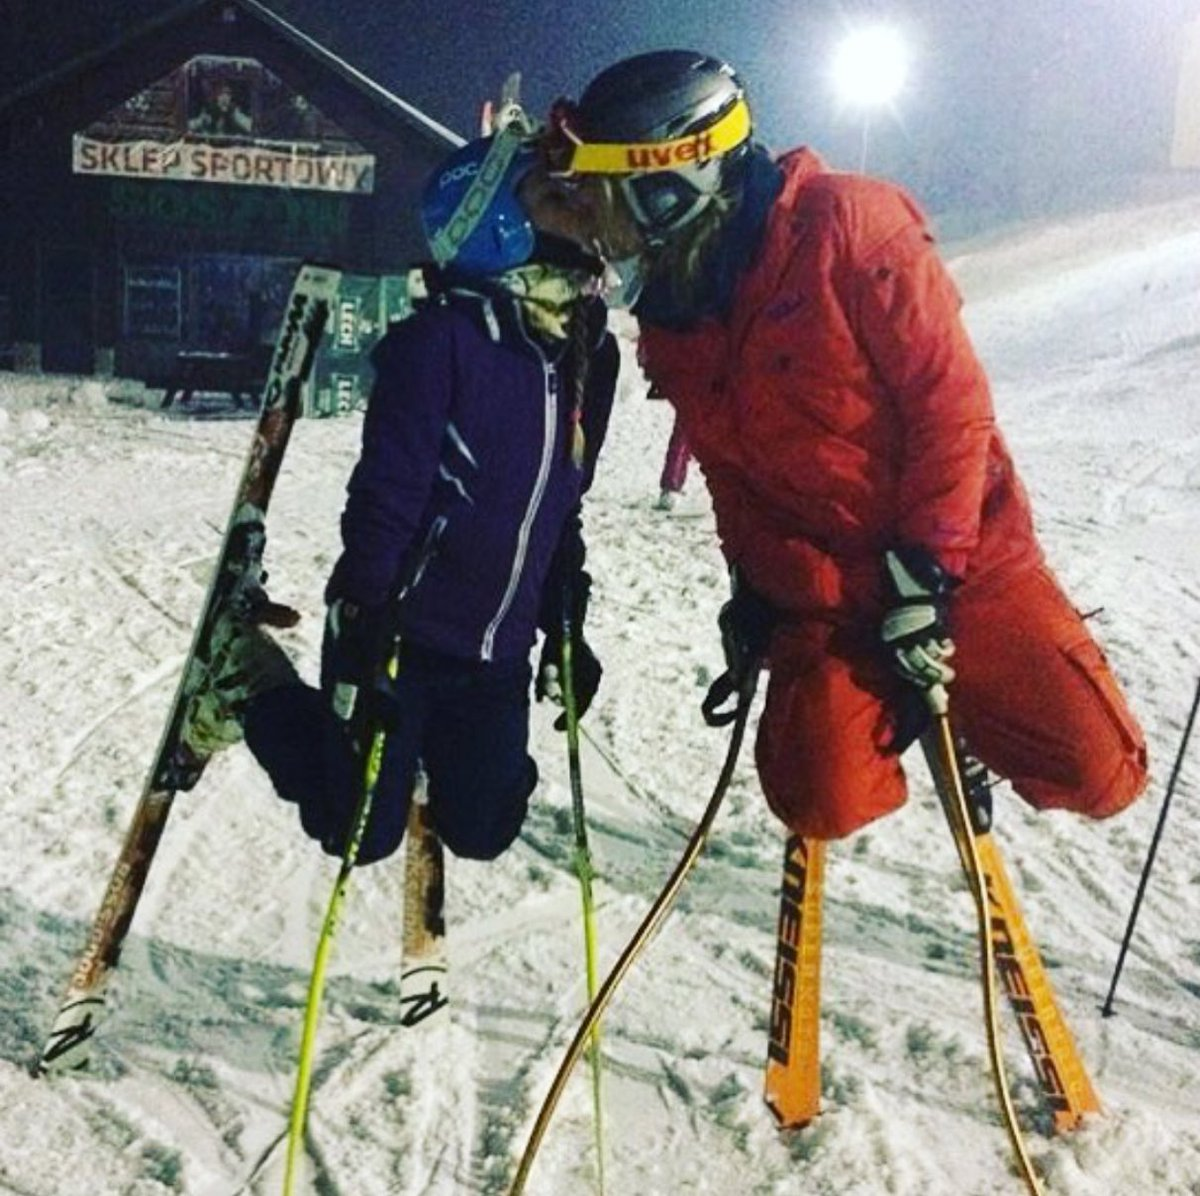 Luvbyrd's second annual Chairlift Speed Dating event begins dec. 10th at Loveland CO. pc Luvbyrd Facebook